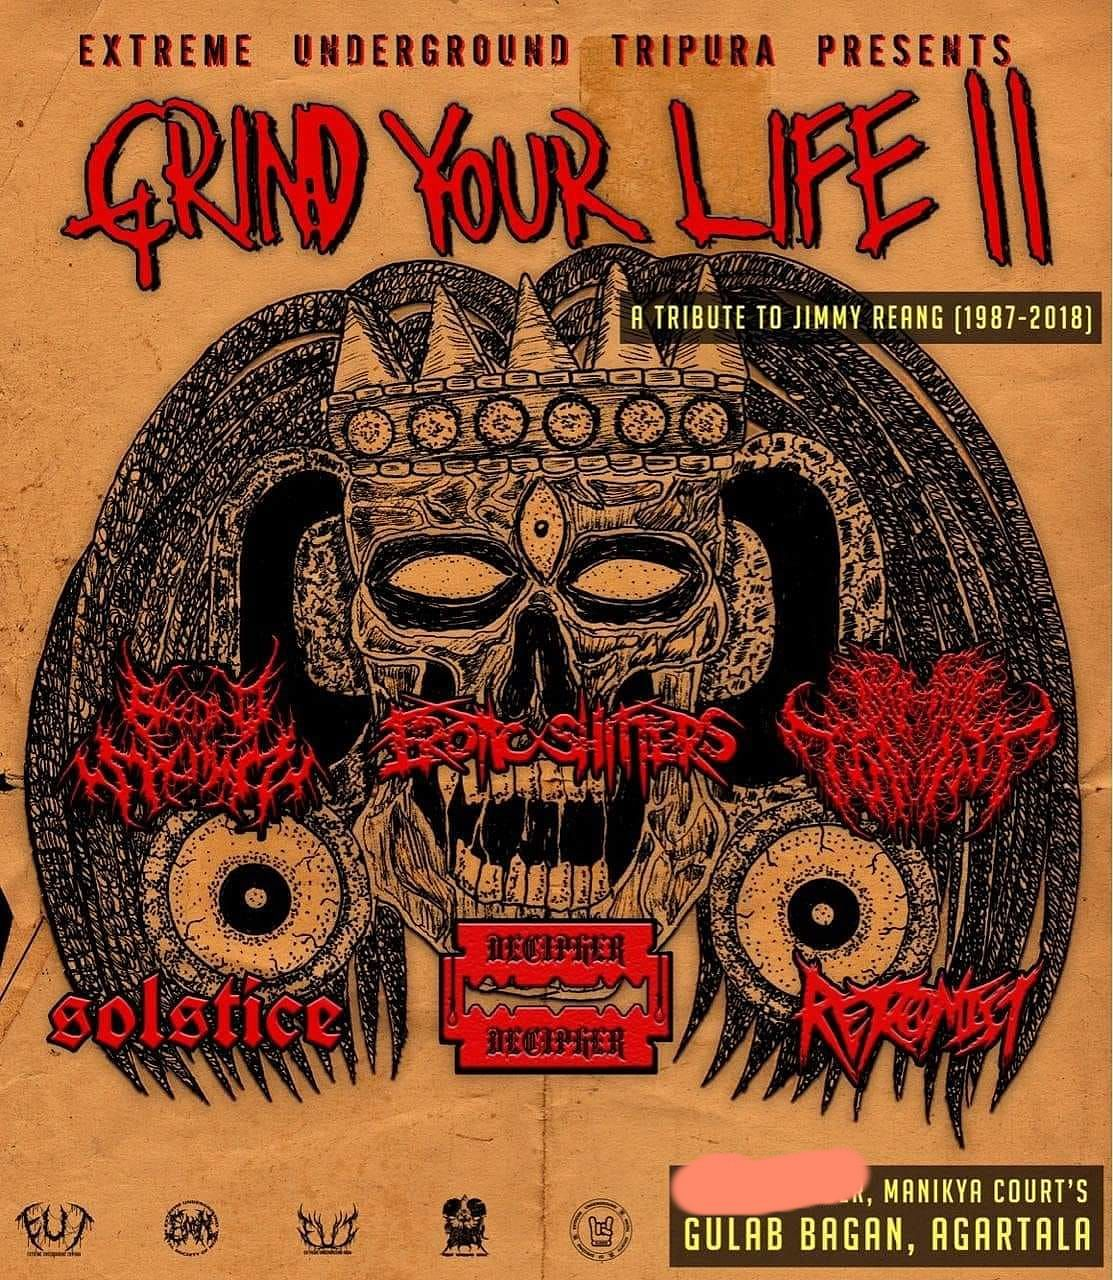 Extreme Underground Tripura's 'Grind Your Life II' will be held at Manikya's Court, Gulab Bagan, Agartala on November 13